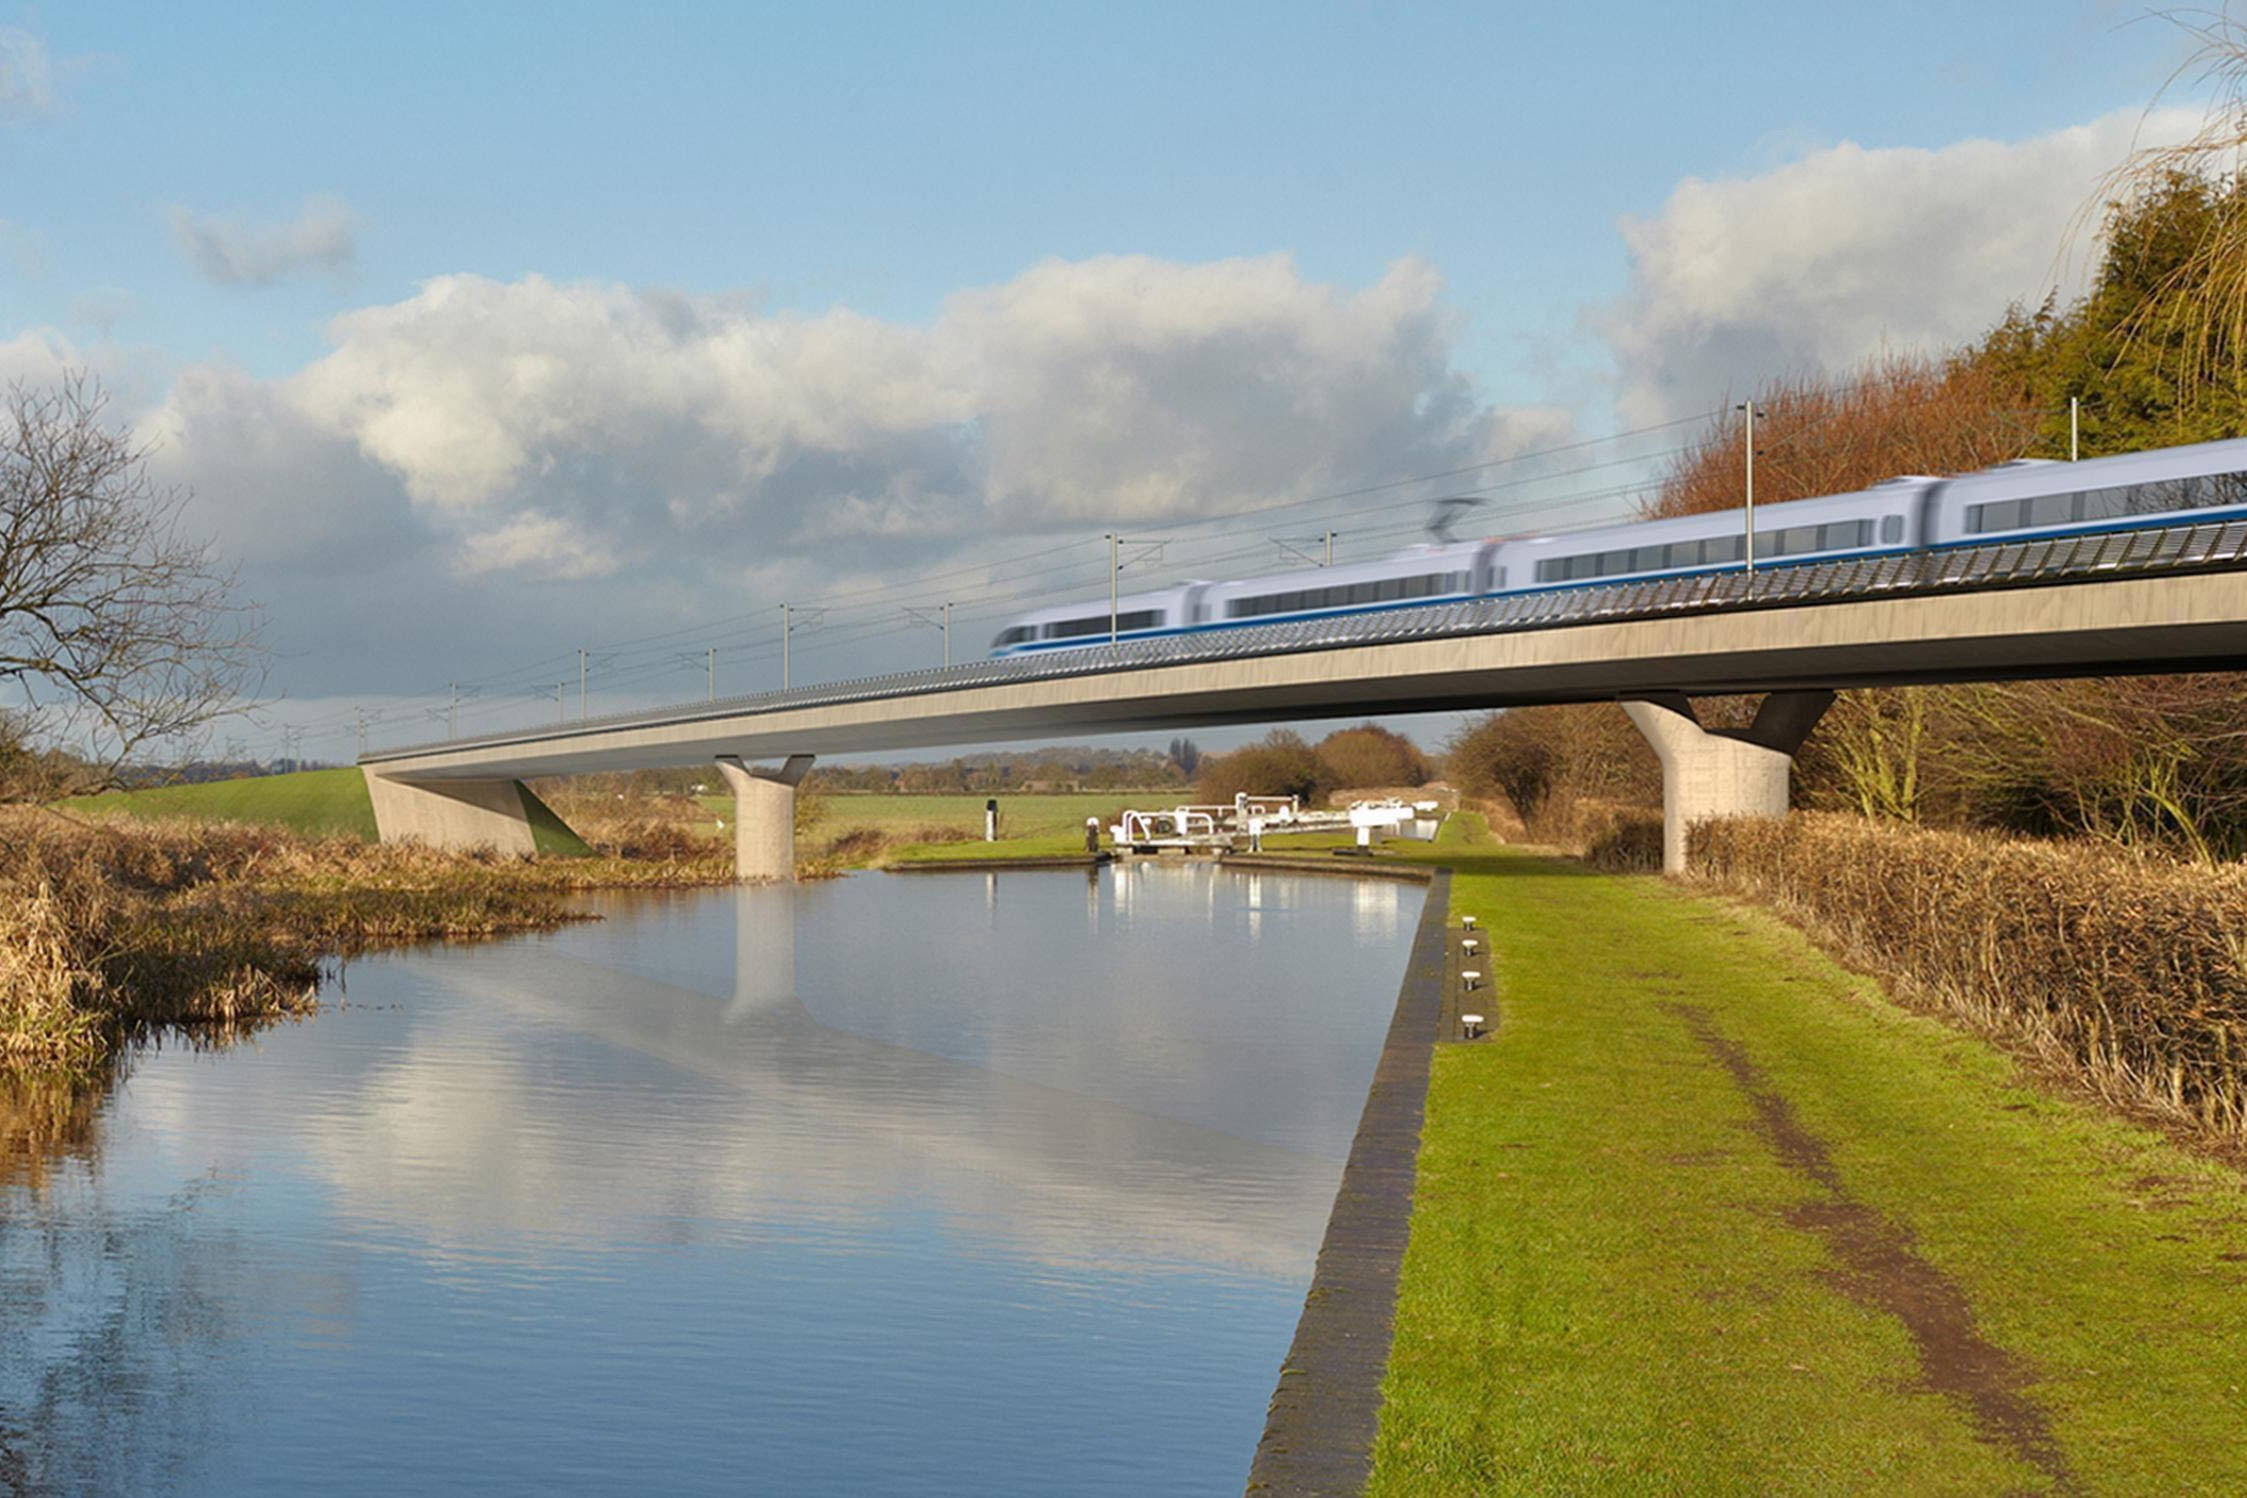 Ministers 'actively considering' scrapping controversial HS2 project